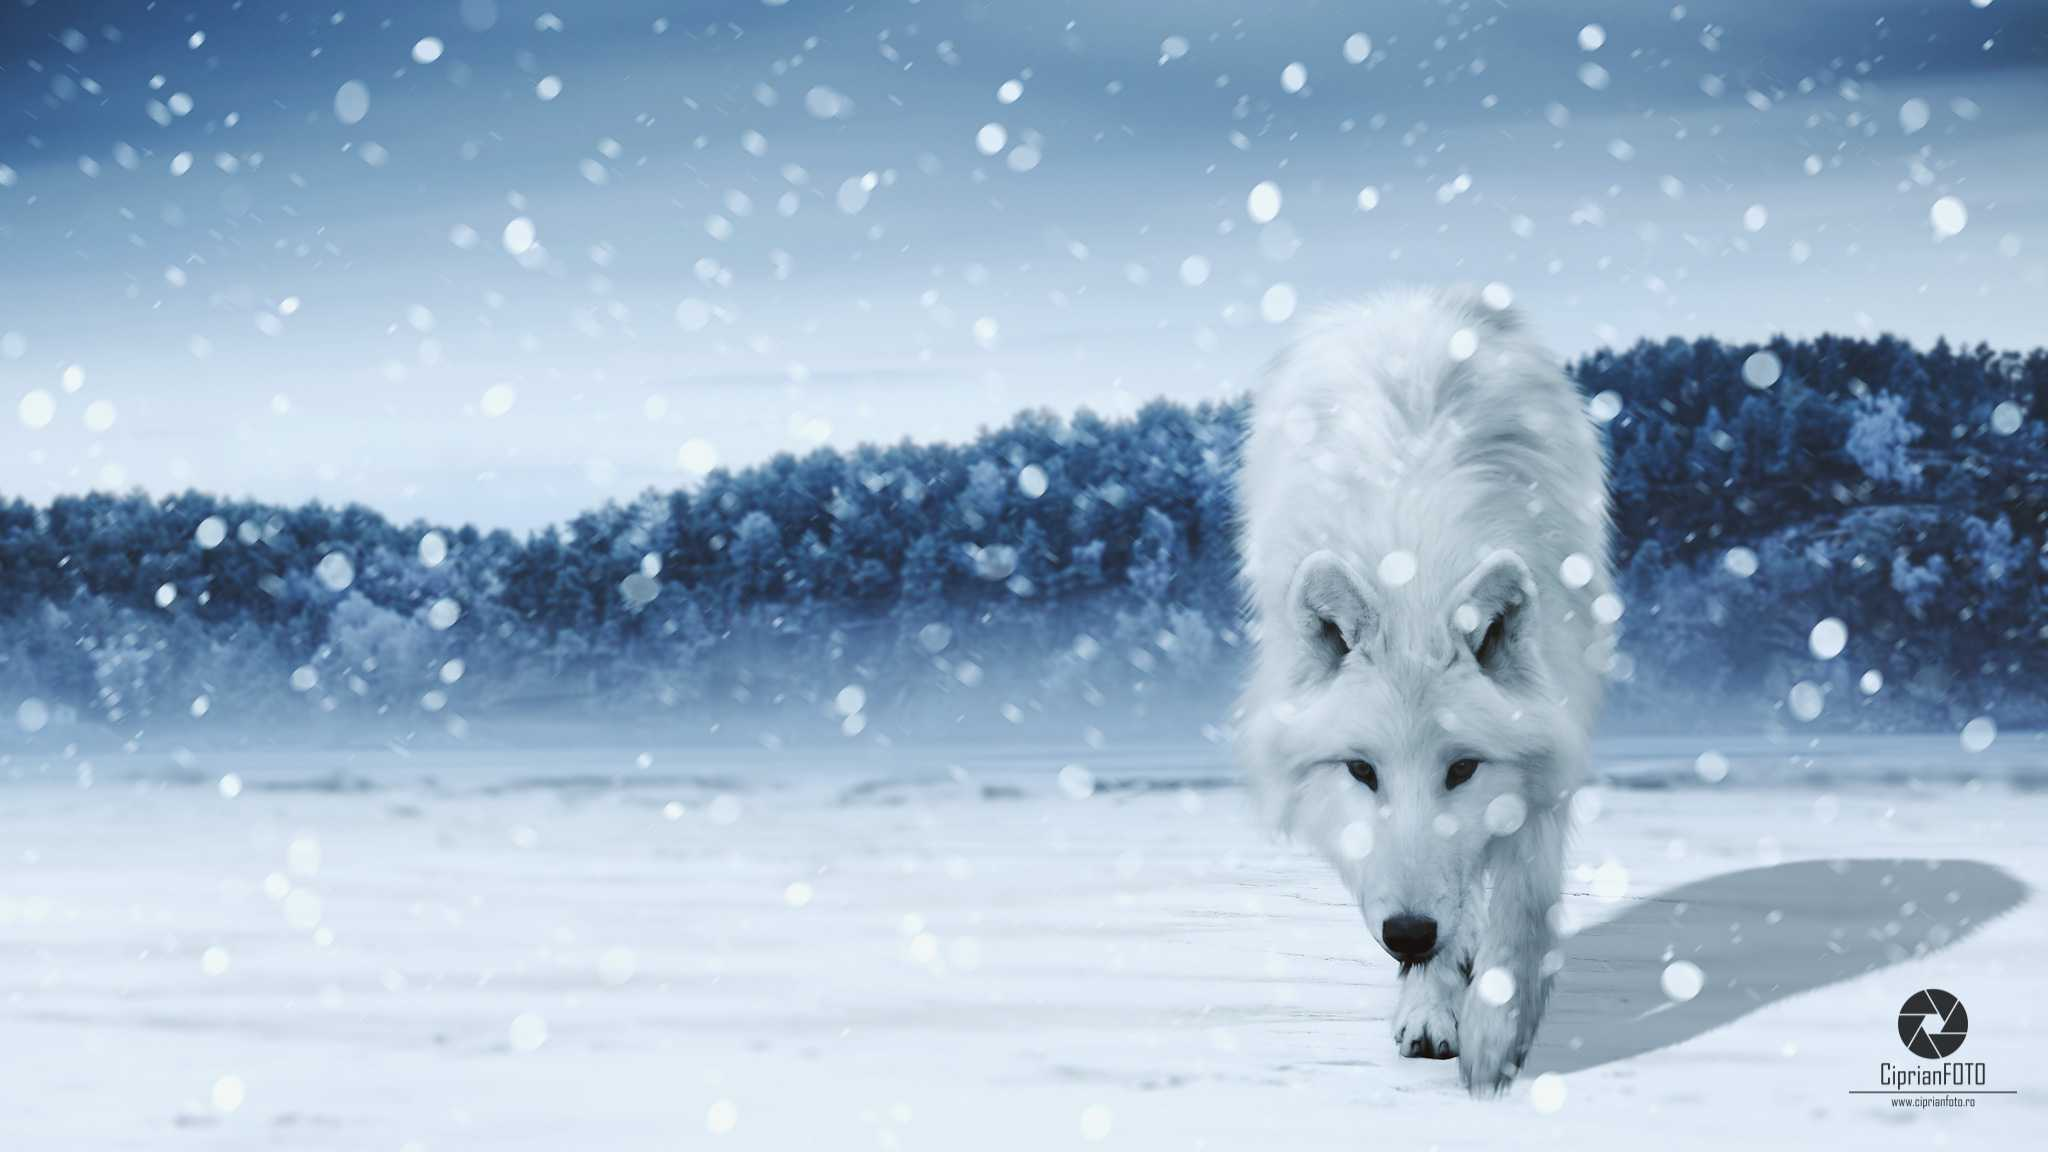 The White Wolf, Photoshop Manipulation Tutorial, CiprianFOTO